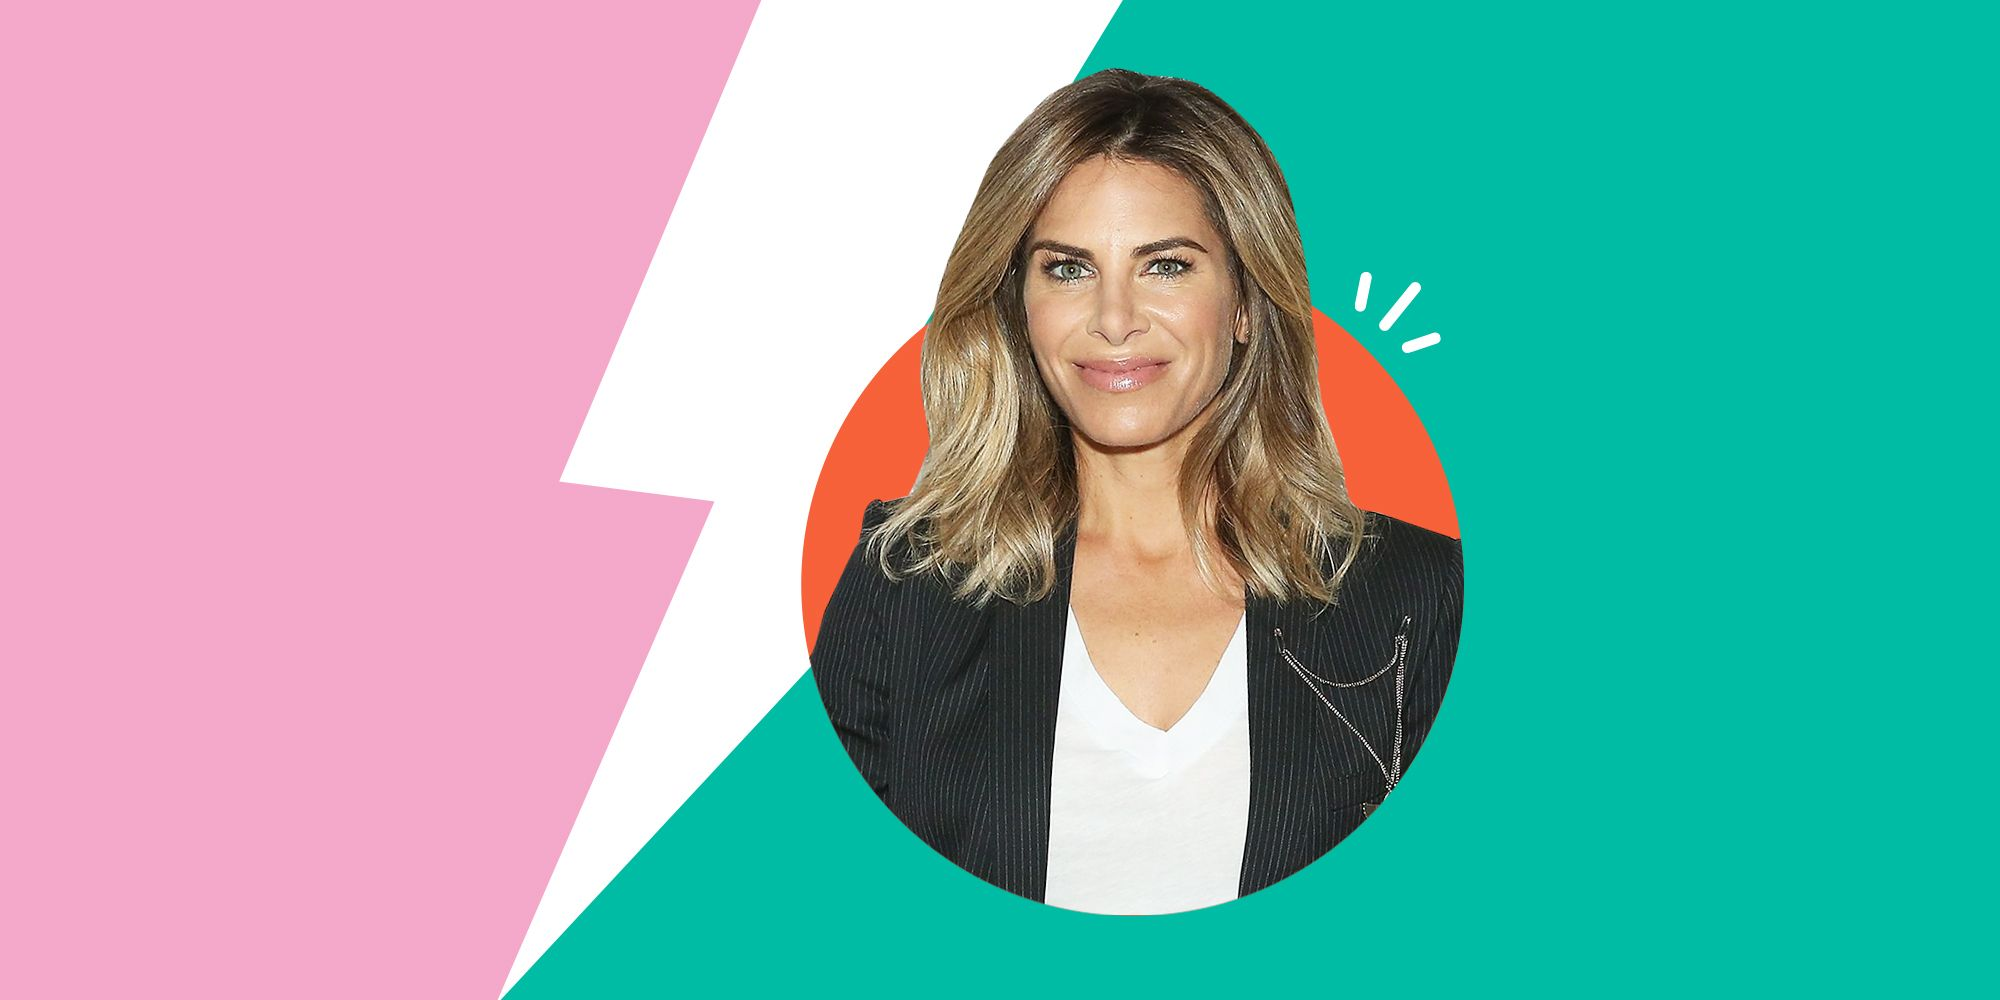 Jillian Michaels: 'Please Don't Eat More Than One Snack A Day'